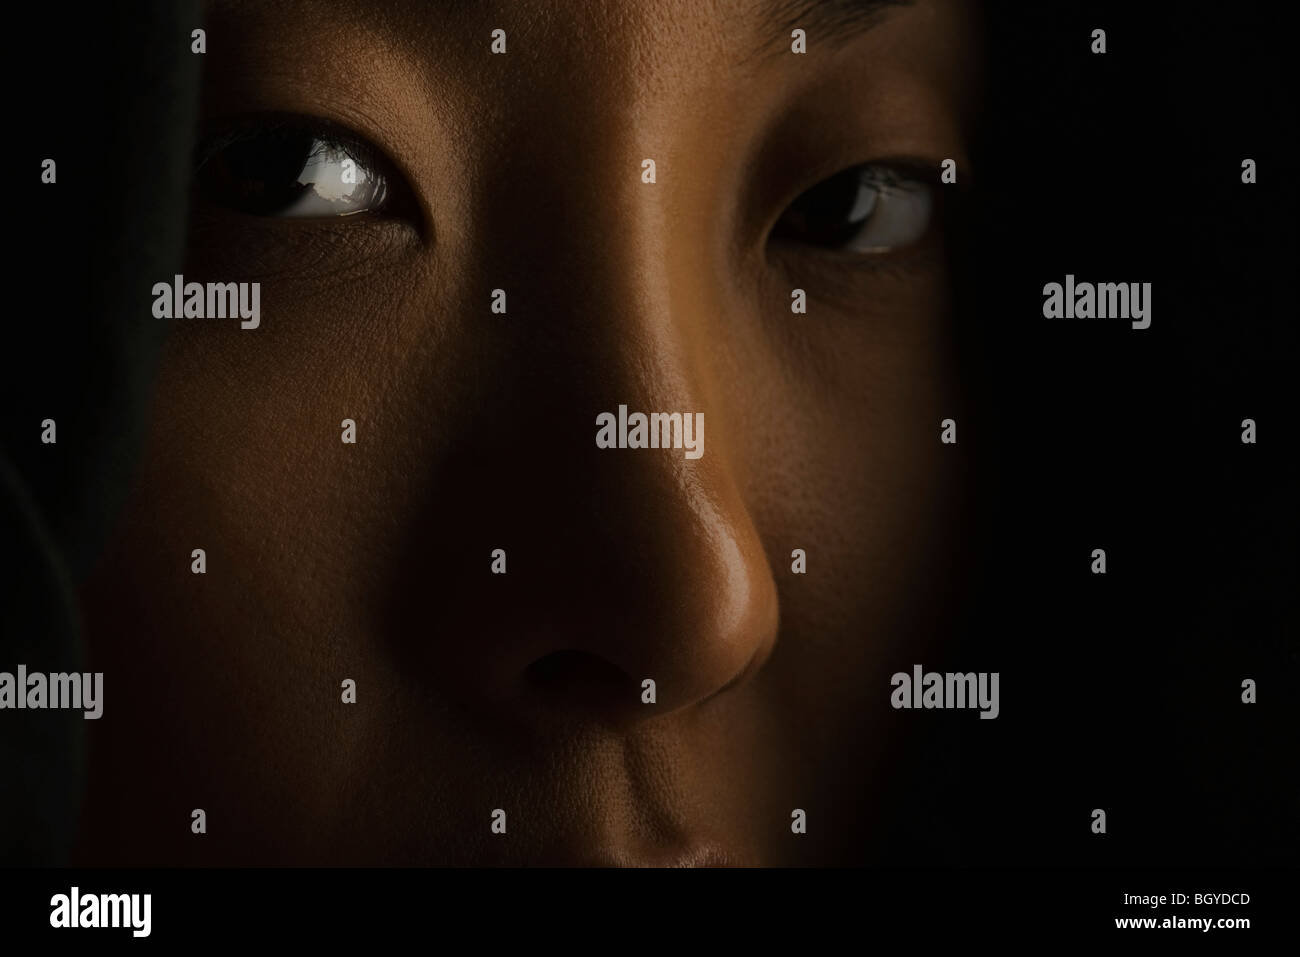 Woman looking mysteriously at camera, close-up - Stock Image